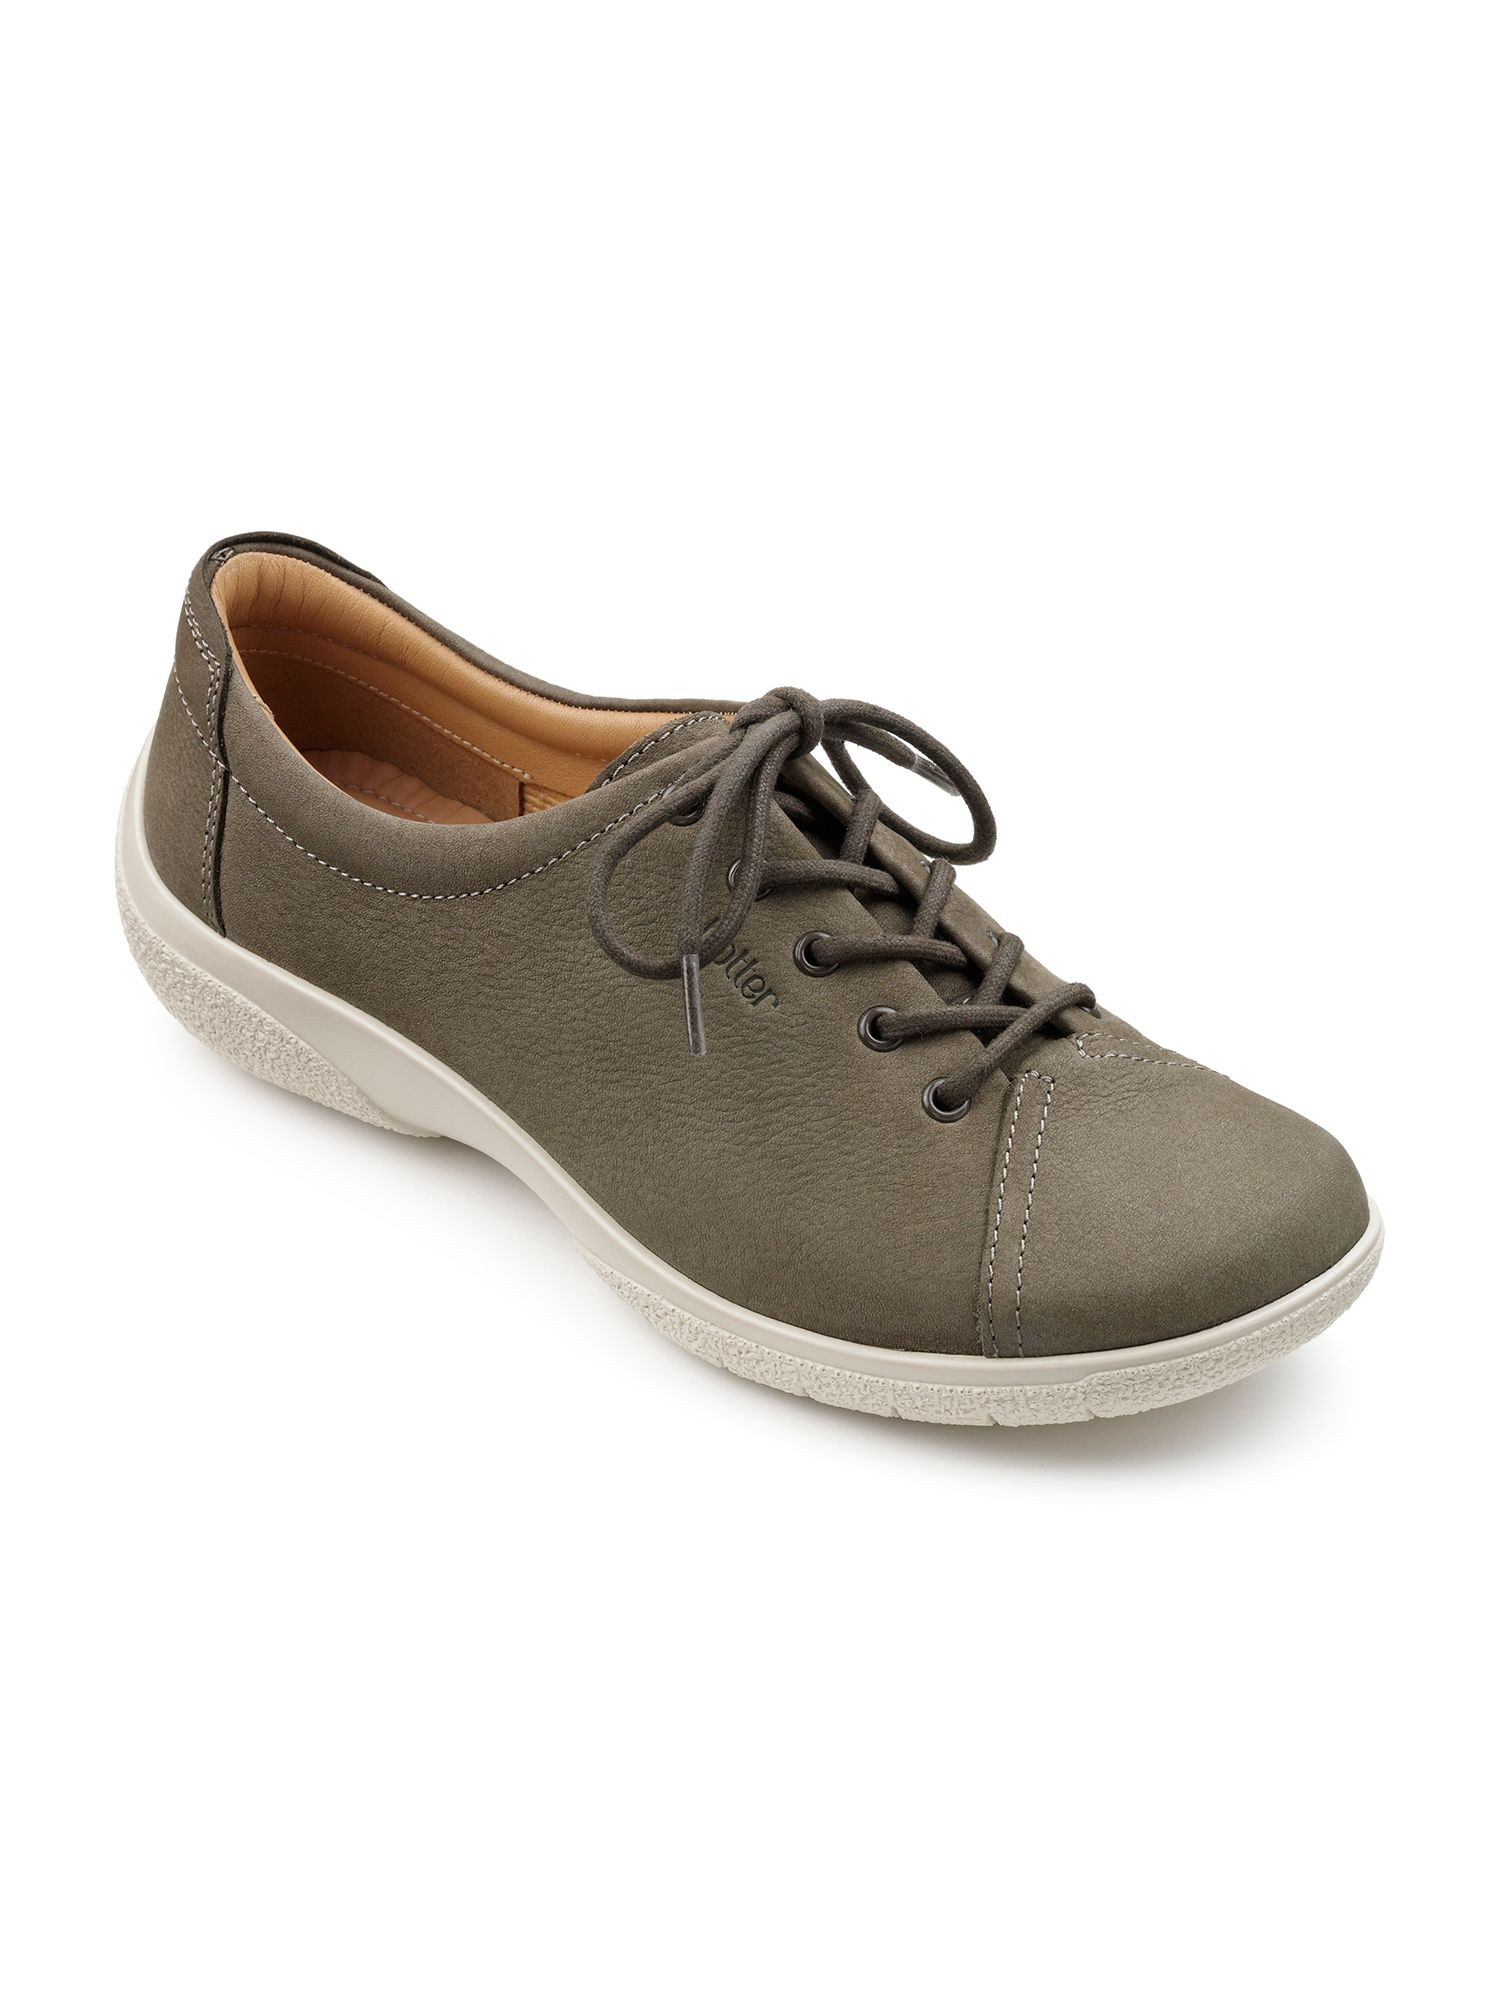 Hotter Dew original extra wide shoes, Brown